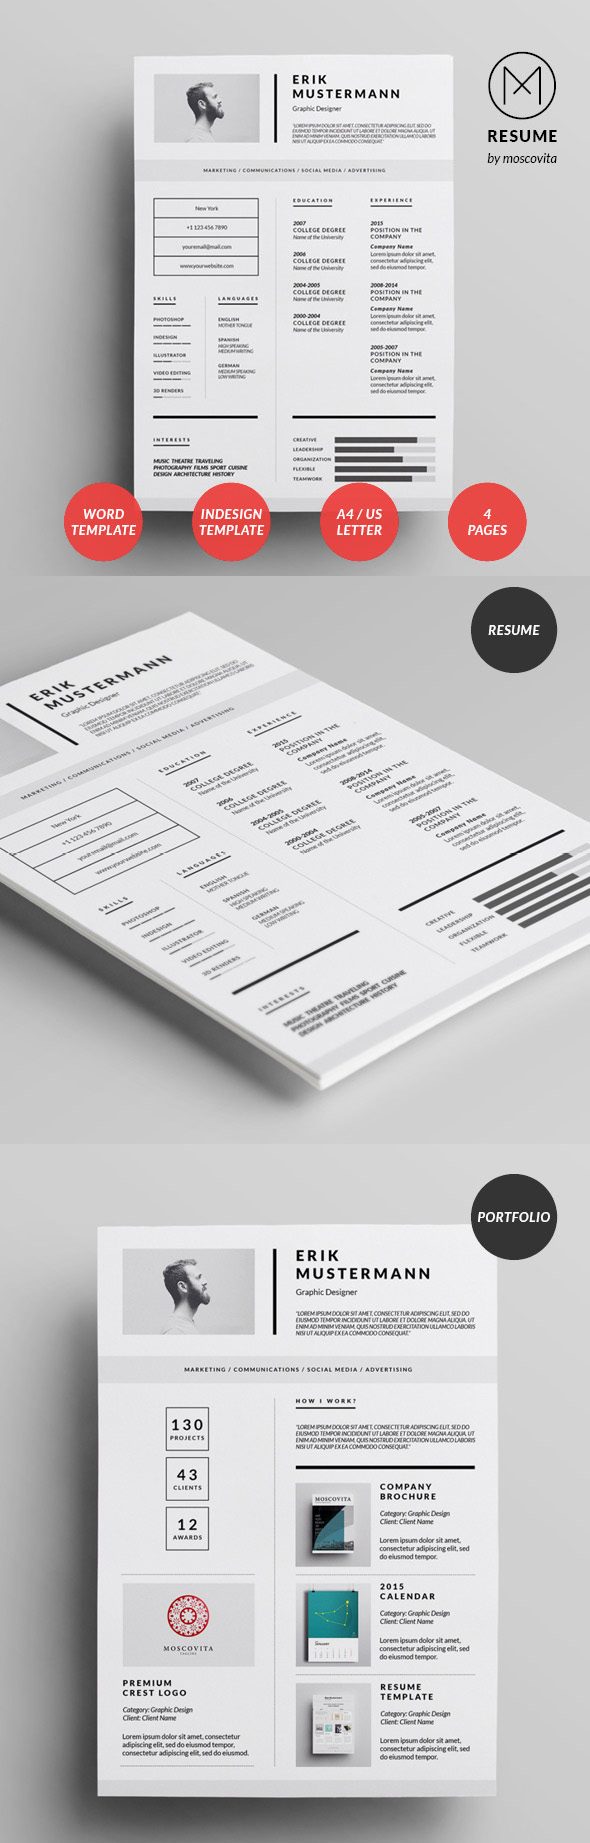 50 Best Resume Templates For 2018   32  Resume Design Examples